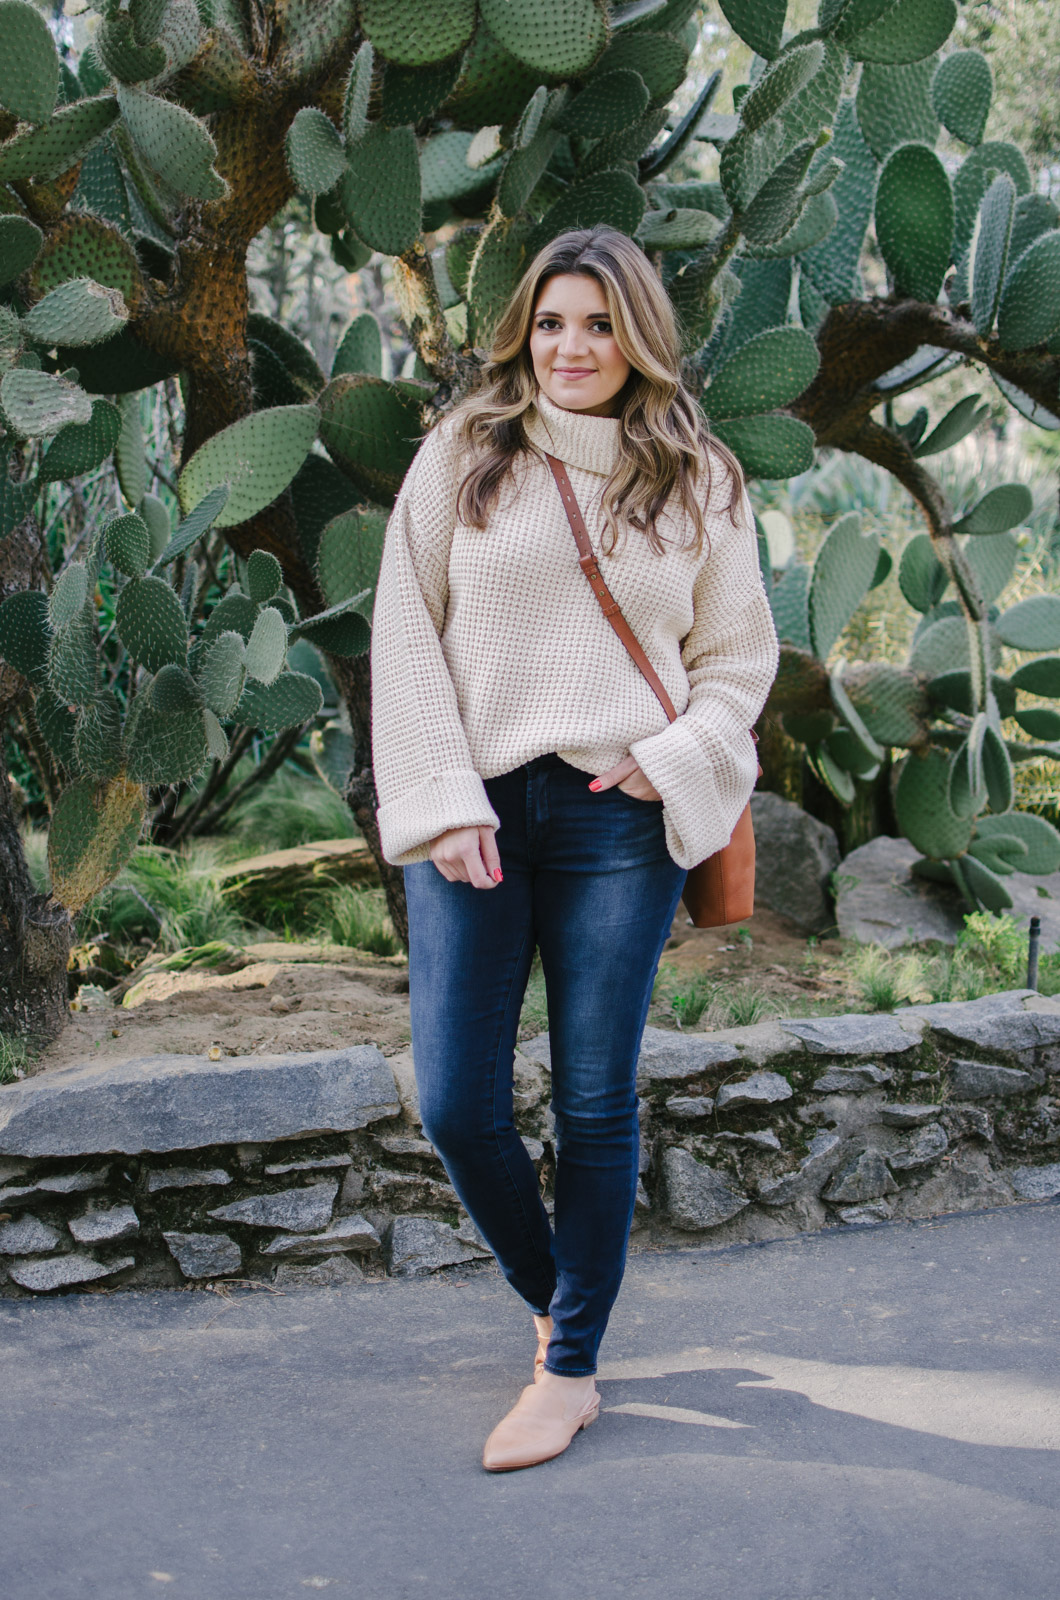 chunky turtleneck sweater outfit - chunky sweater outfit winter | See more Winter outfits at bylaurenm.com